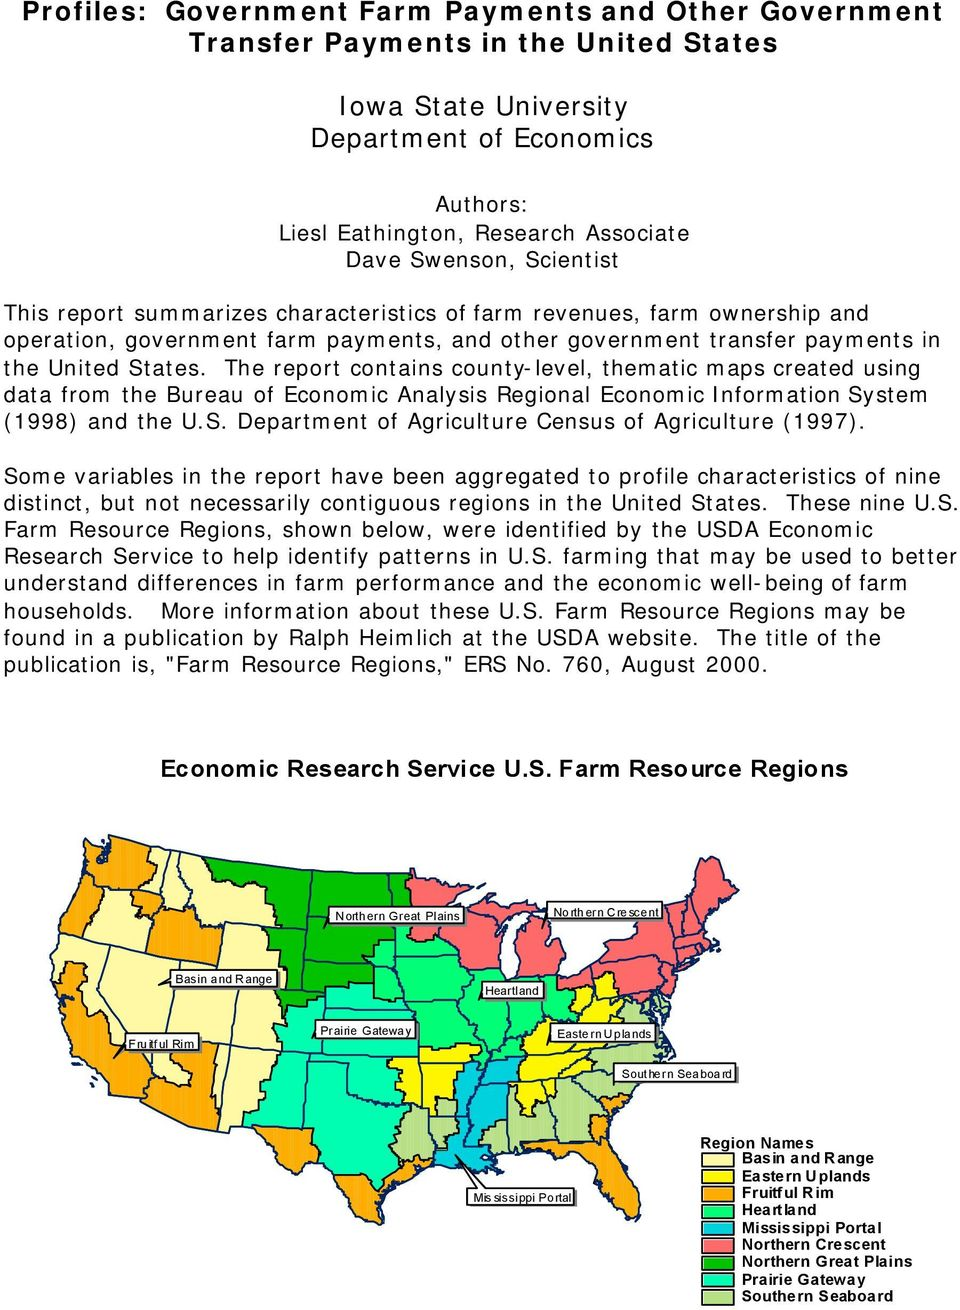 The report contains county-level, thematic maps created using data from the Bureau of Economic Analysis Regional Economic Information System (1998) and the U.S. Department of Agriculture Census of Agriculture (1997).